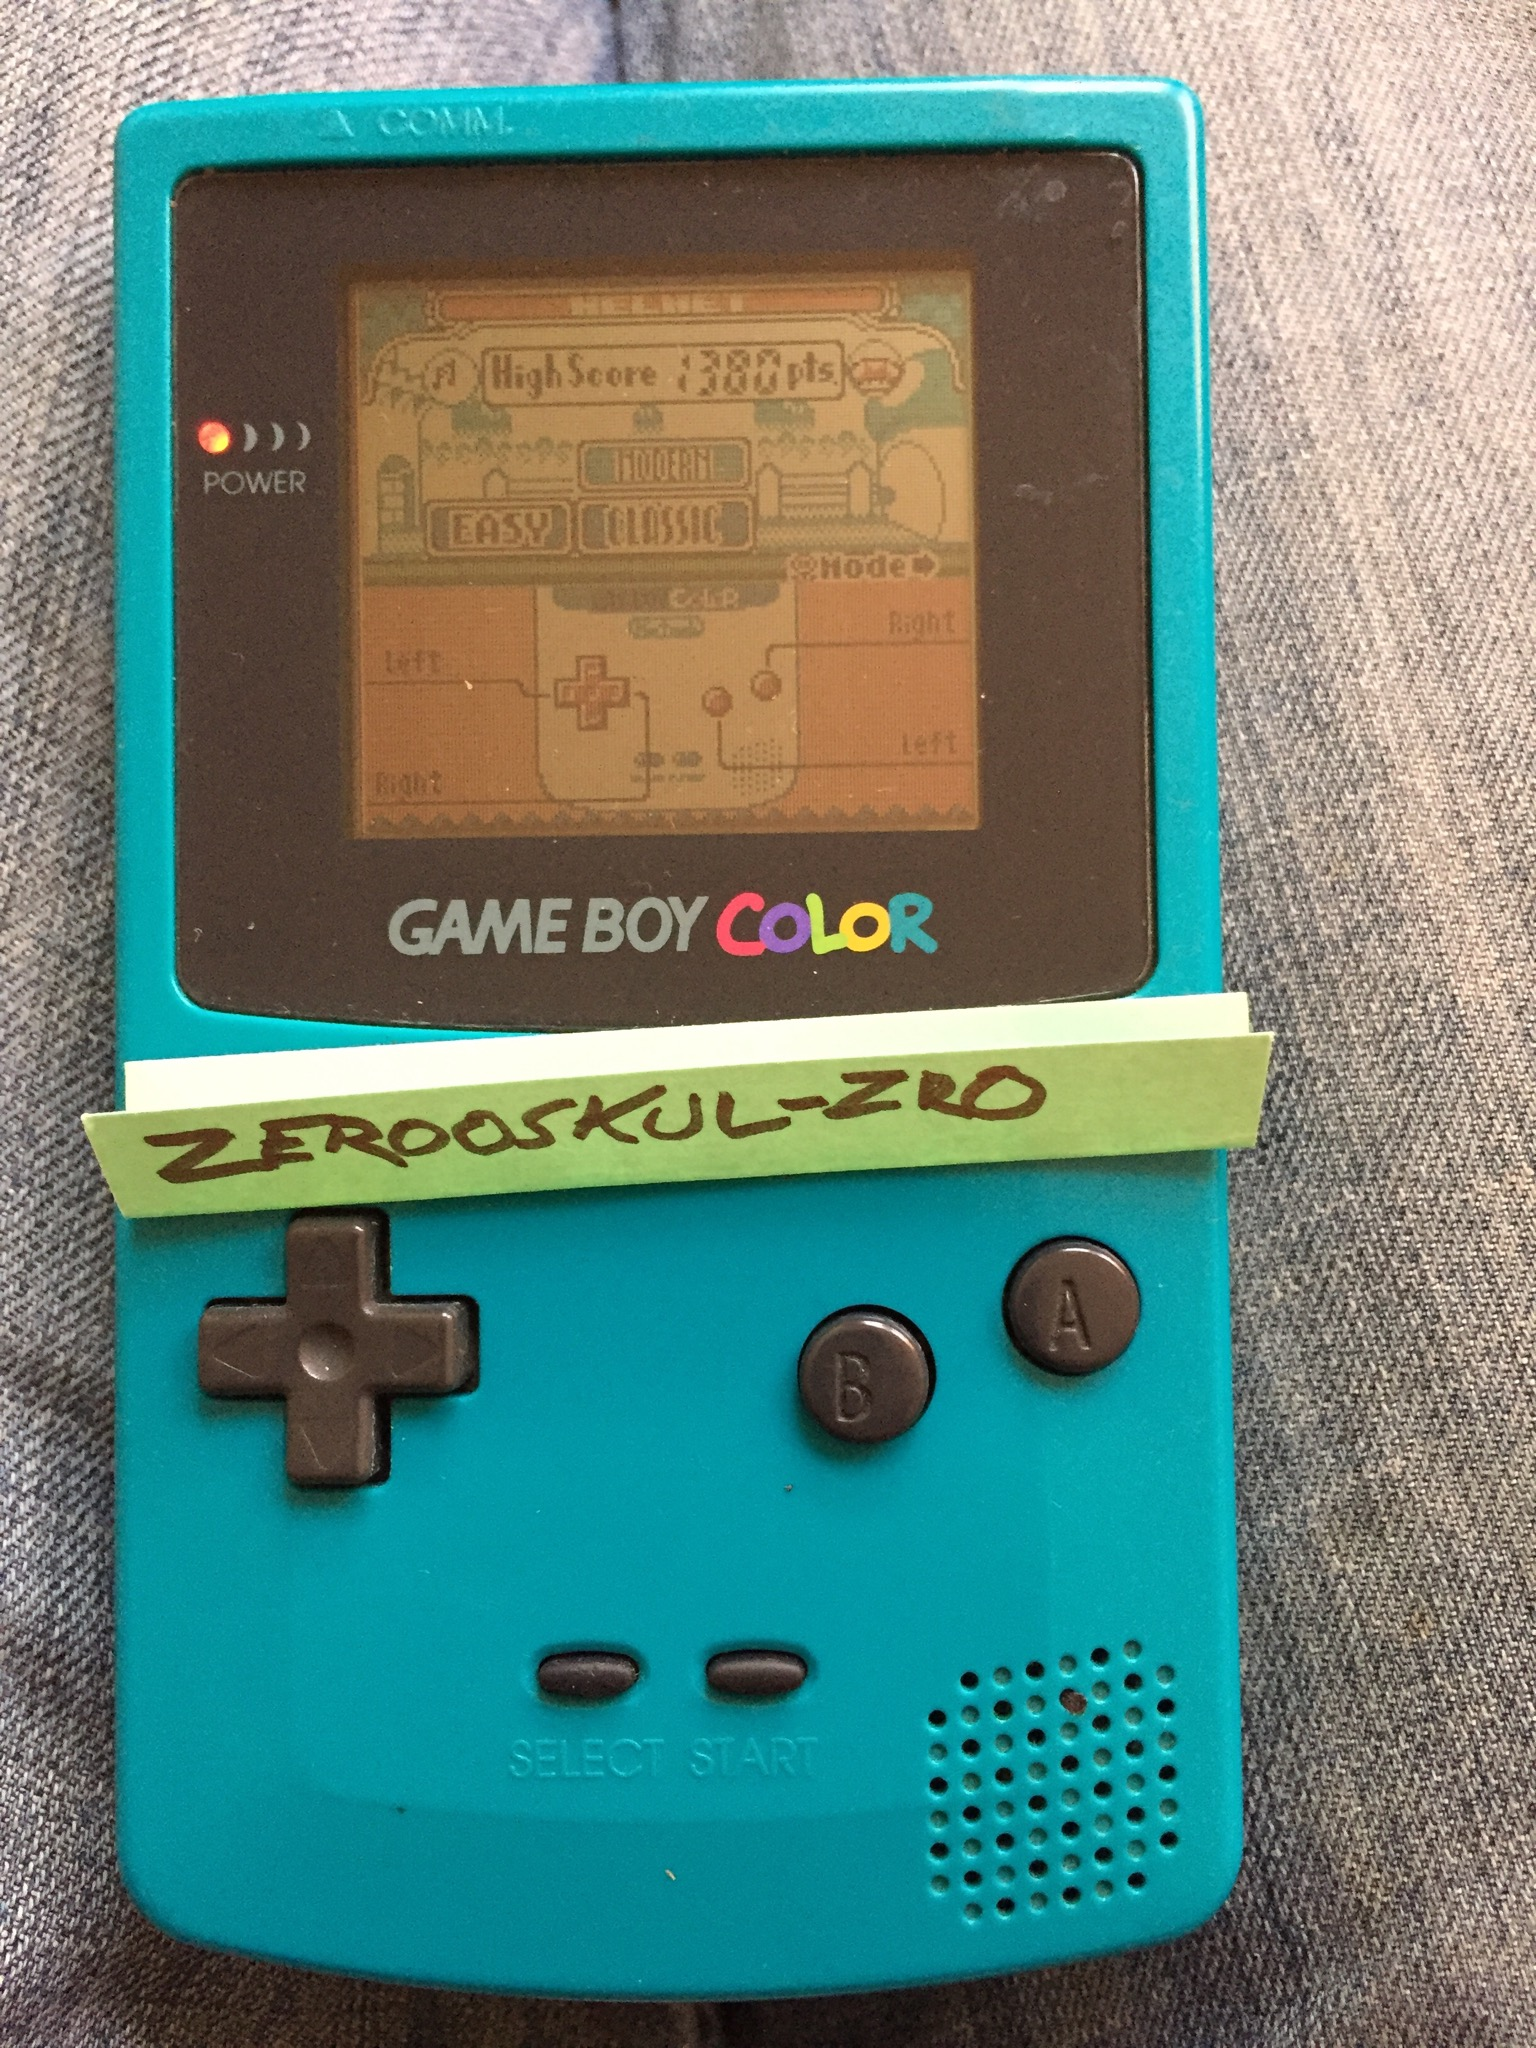 zerooskul: Game & Watch Gallery 2: Helmet: Classic: Easy (Game Boy Color) 1,380 points on 2018-06-29 11:43:49